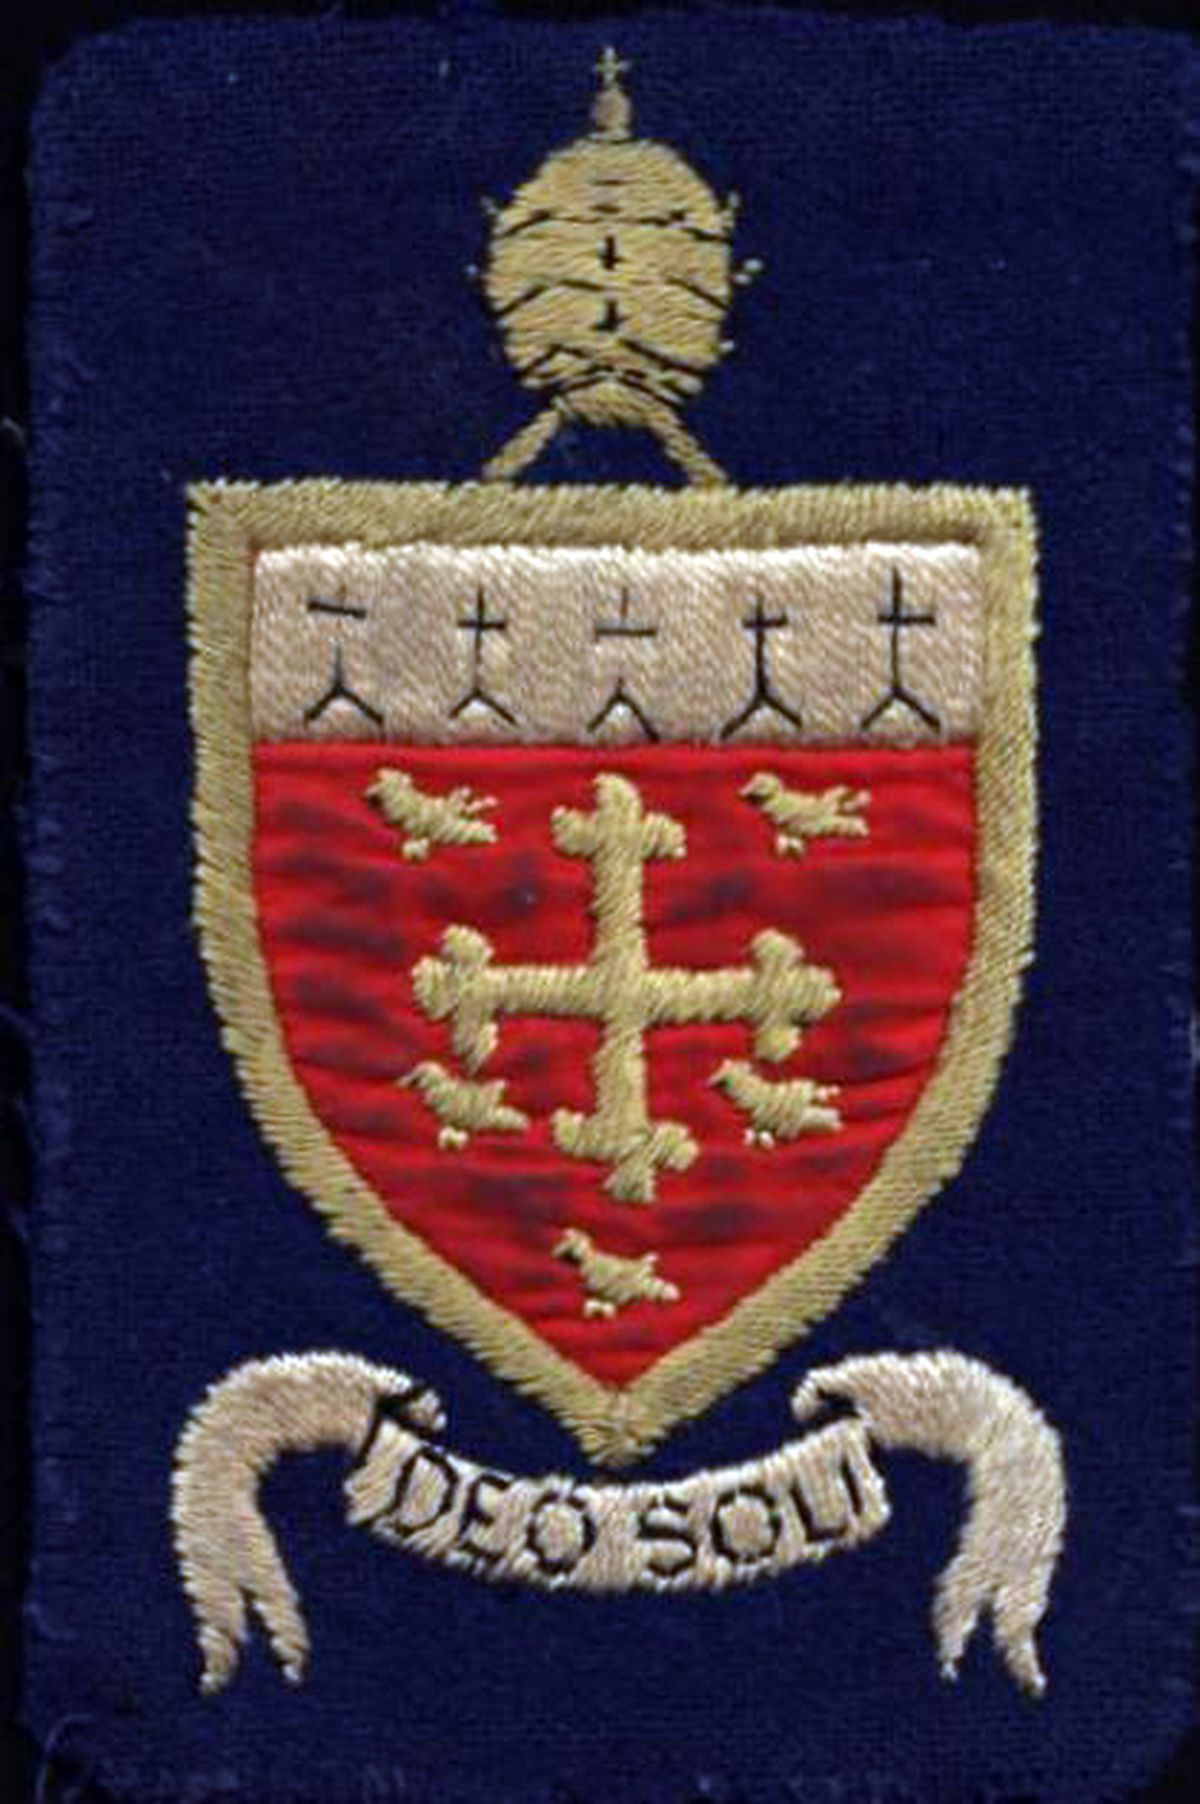 The school badge of St Edward's College, Cheswardine Hall.